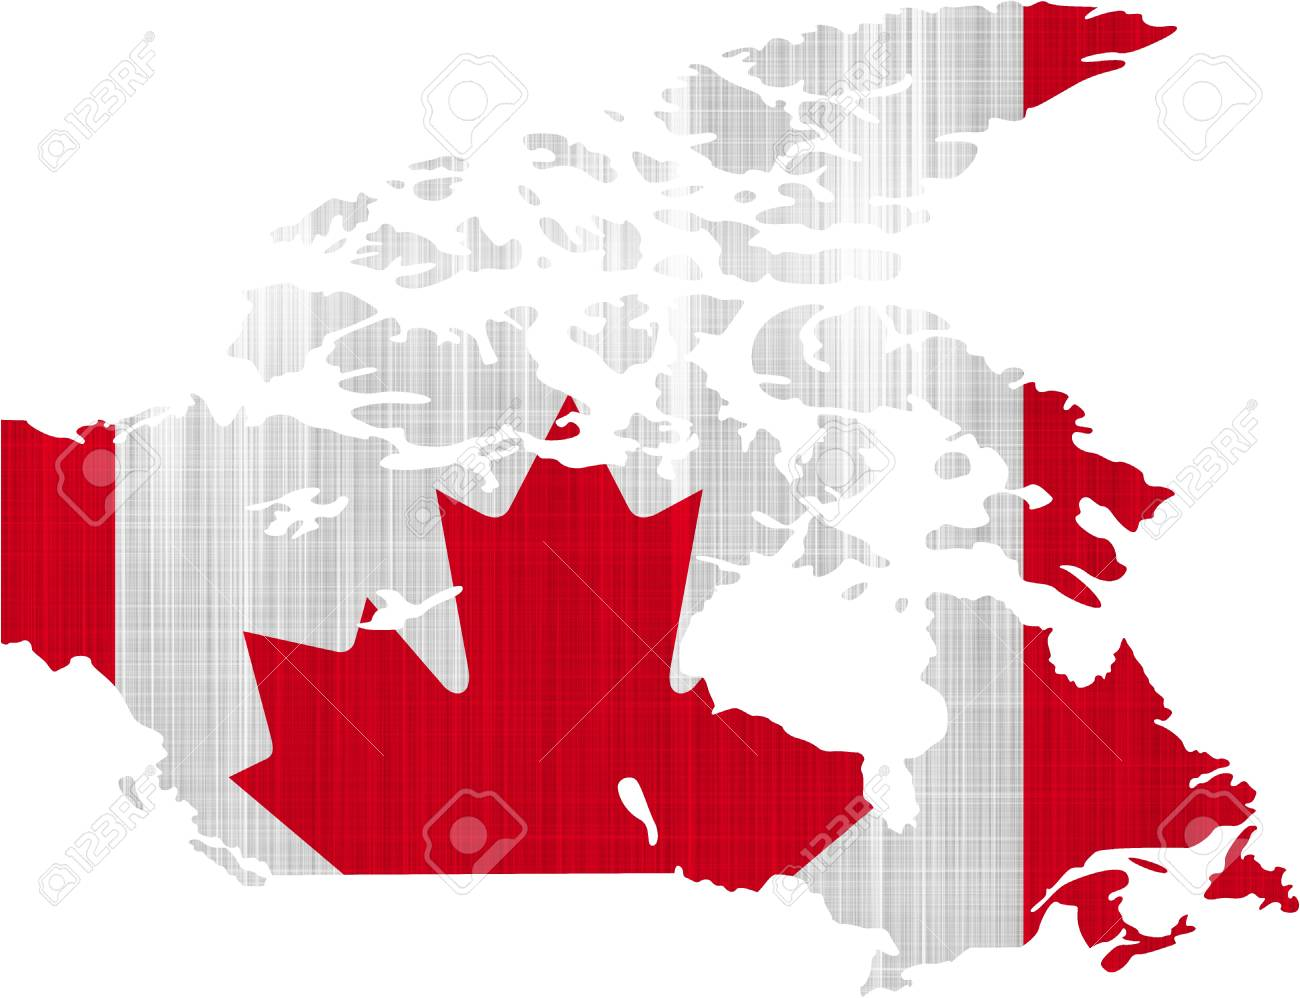 Canada Flag Map On A White Background Stock Photo, Picture And ... on